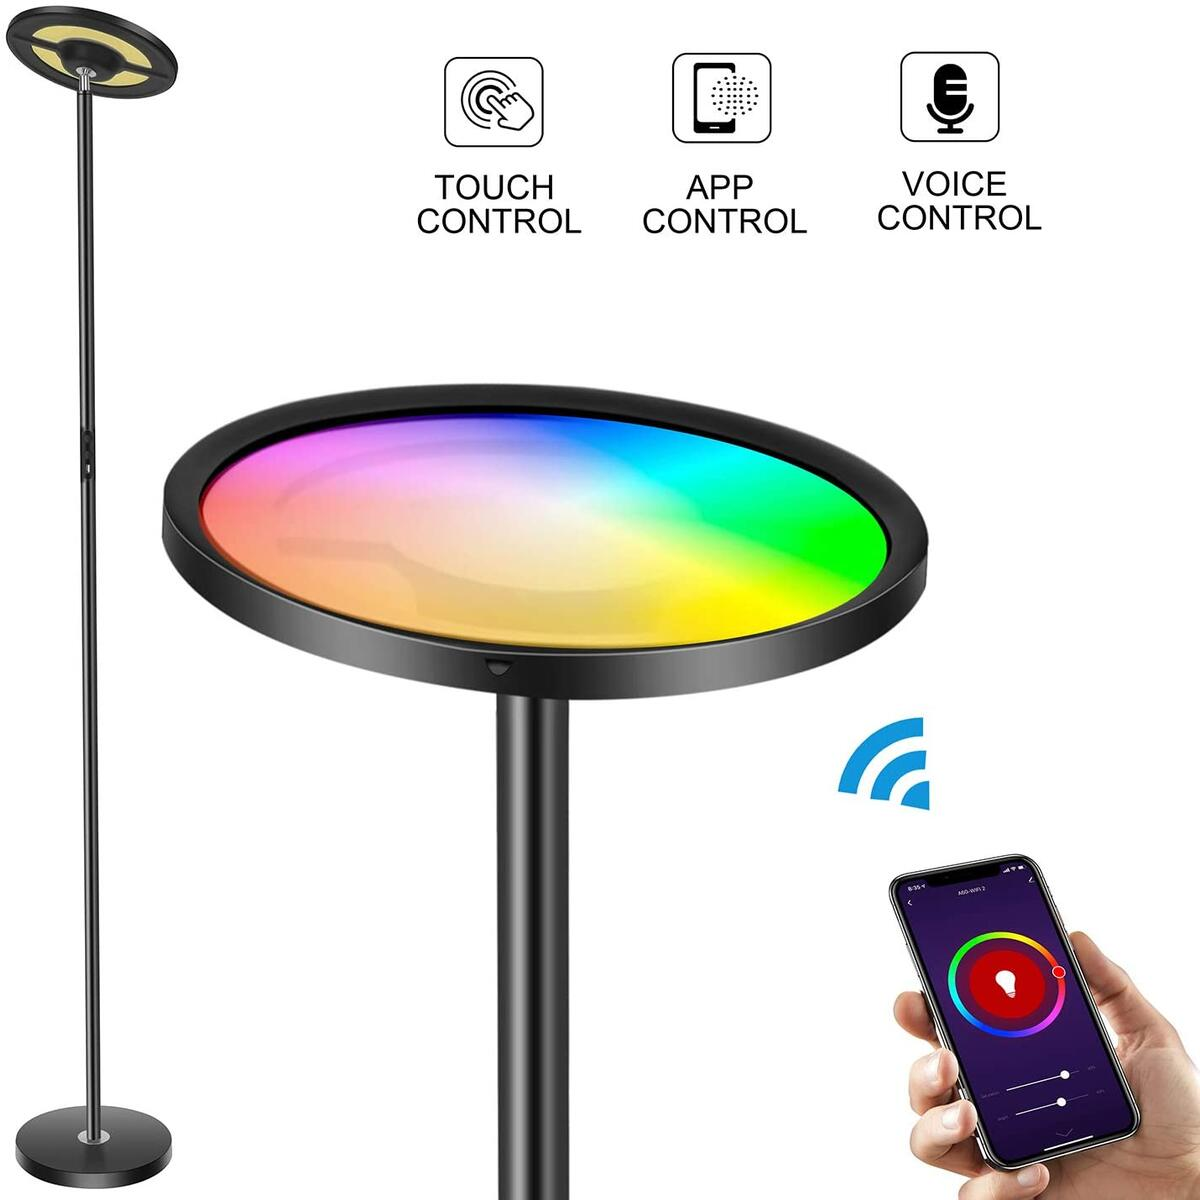 Wixann Smart Led Floor Lamp - WiFi Torchiere Floor Lamp Work with Alexa Google Home, 2000LM Super Bright Dimmable Color Changing Modern Standing Lamp for Living Rooms Bedroom Offices - Black